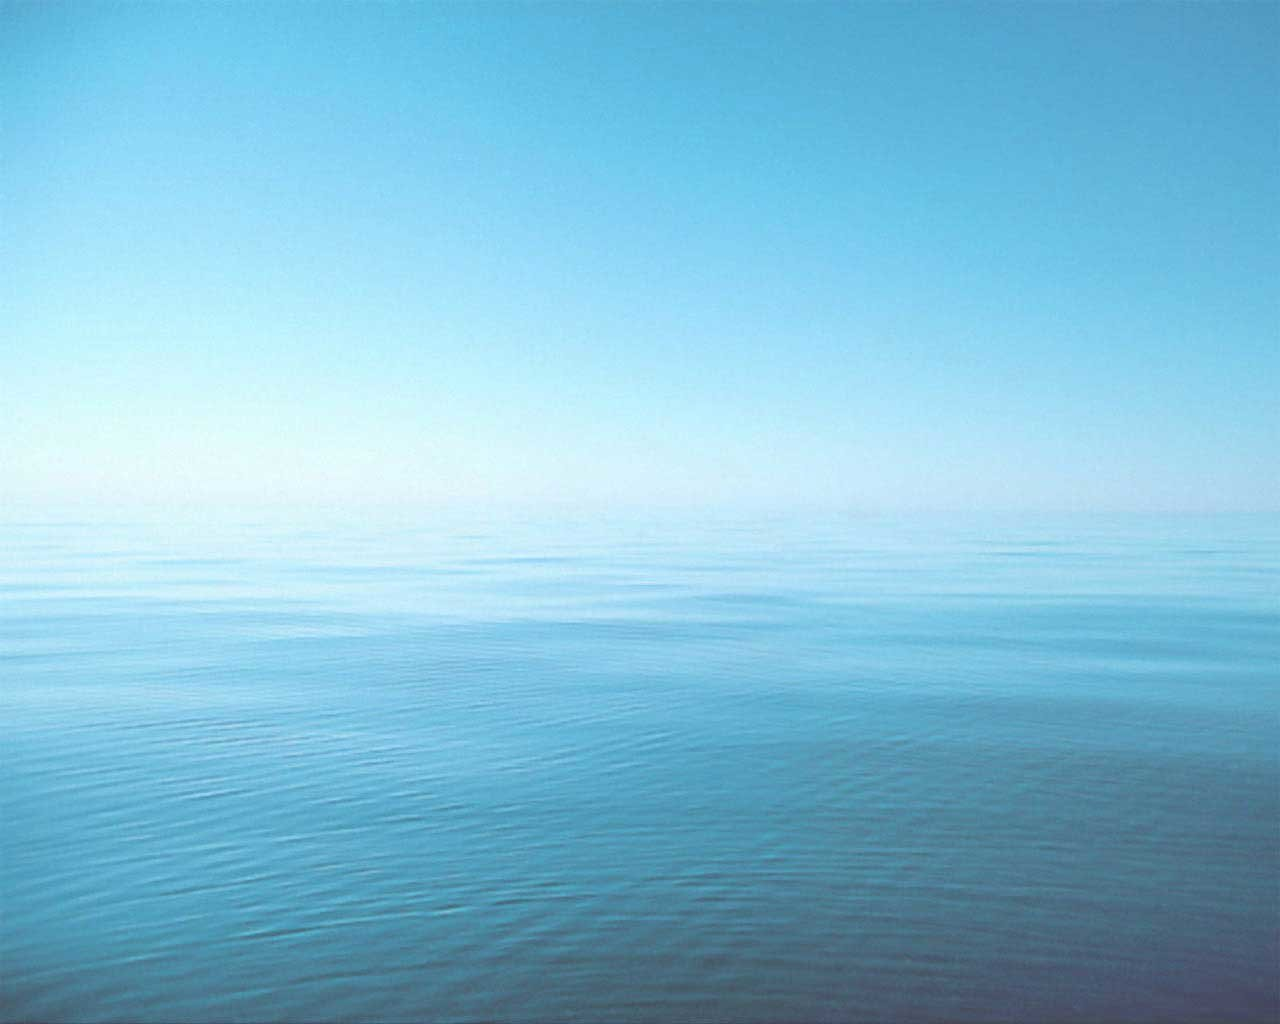 free ocean high quality background id 393426 for hd 1280x1024 pc